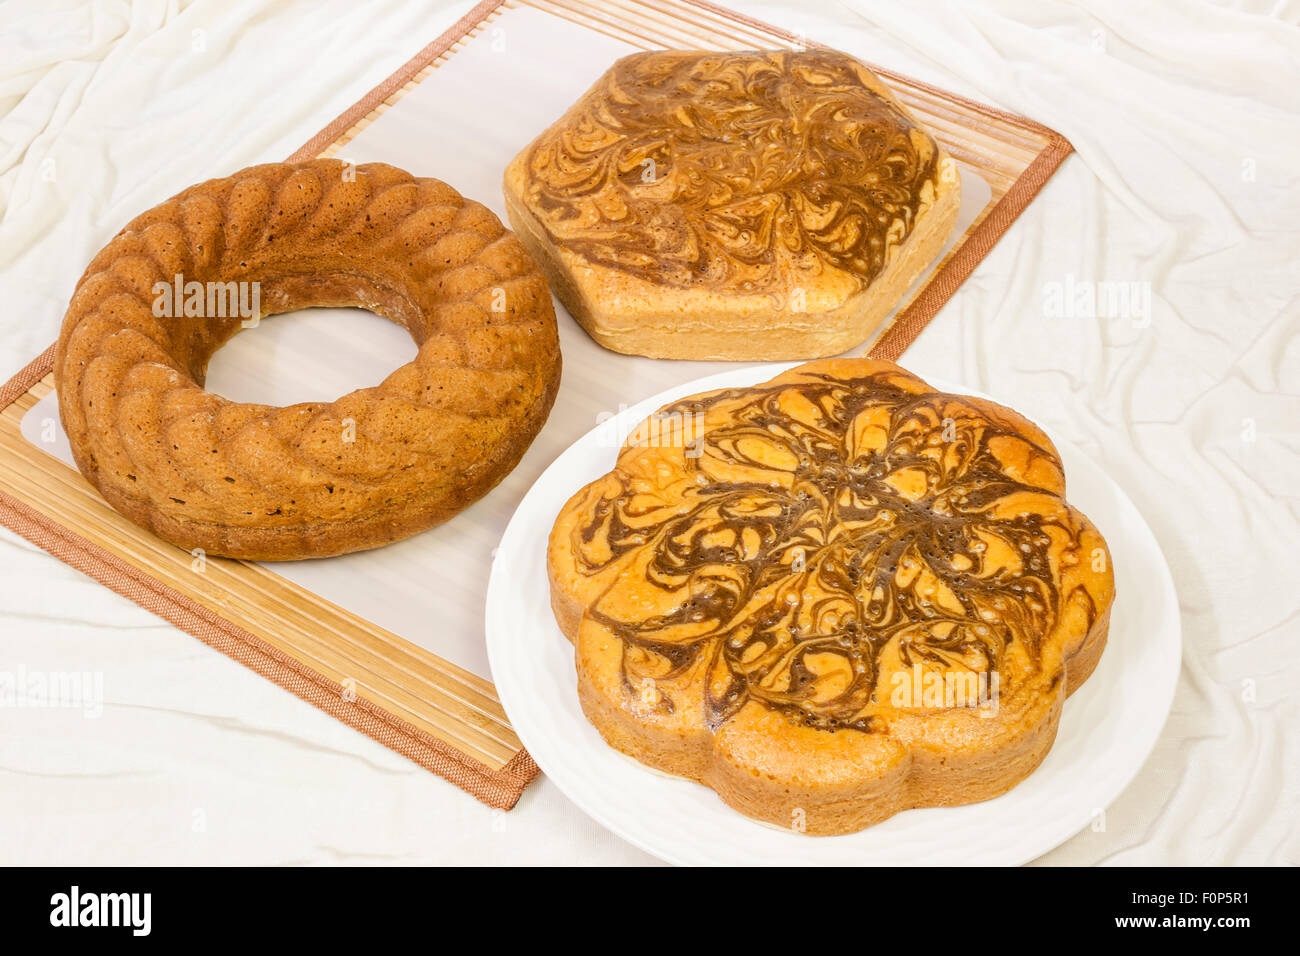 A top view of a couple of marble cakes and a pound bundt cake. - Stock Image